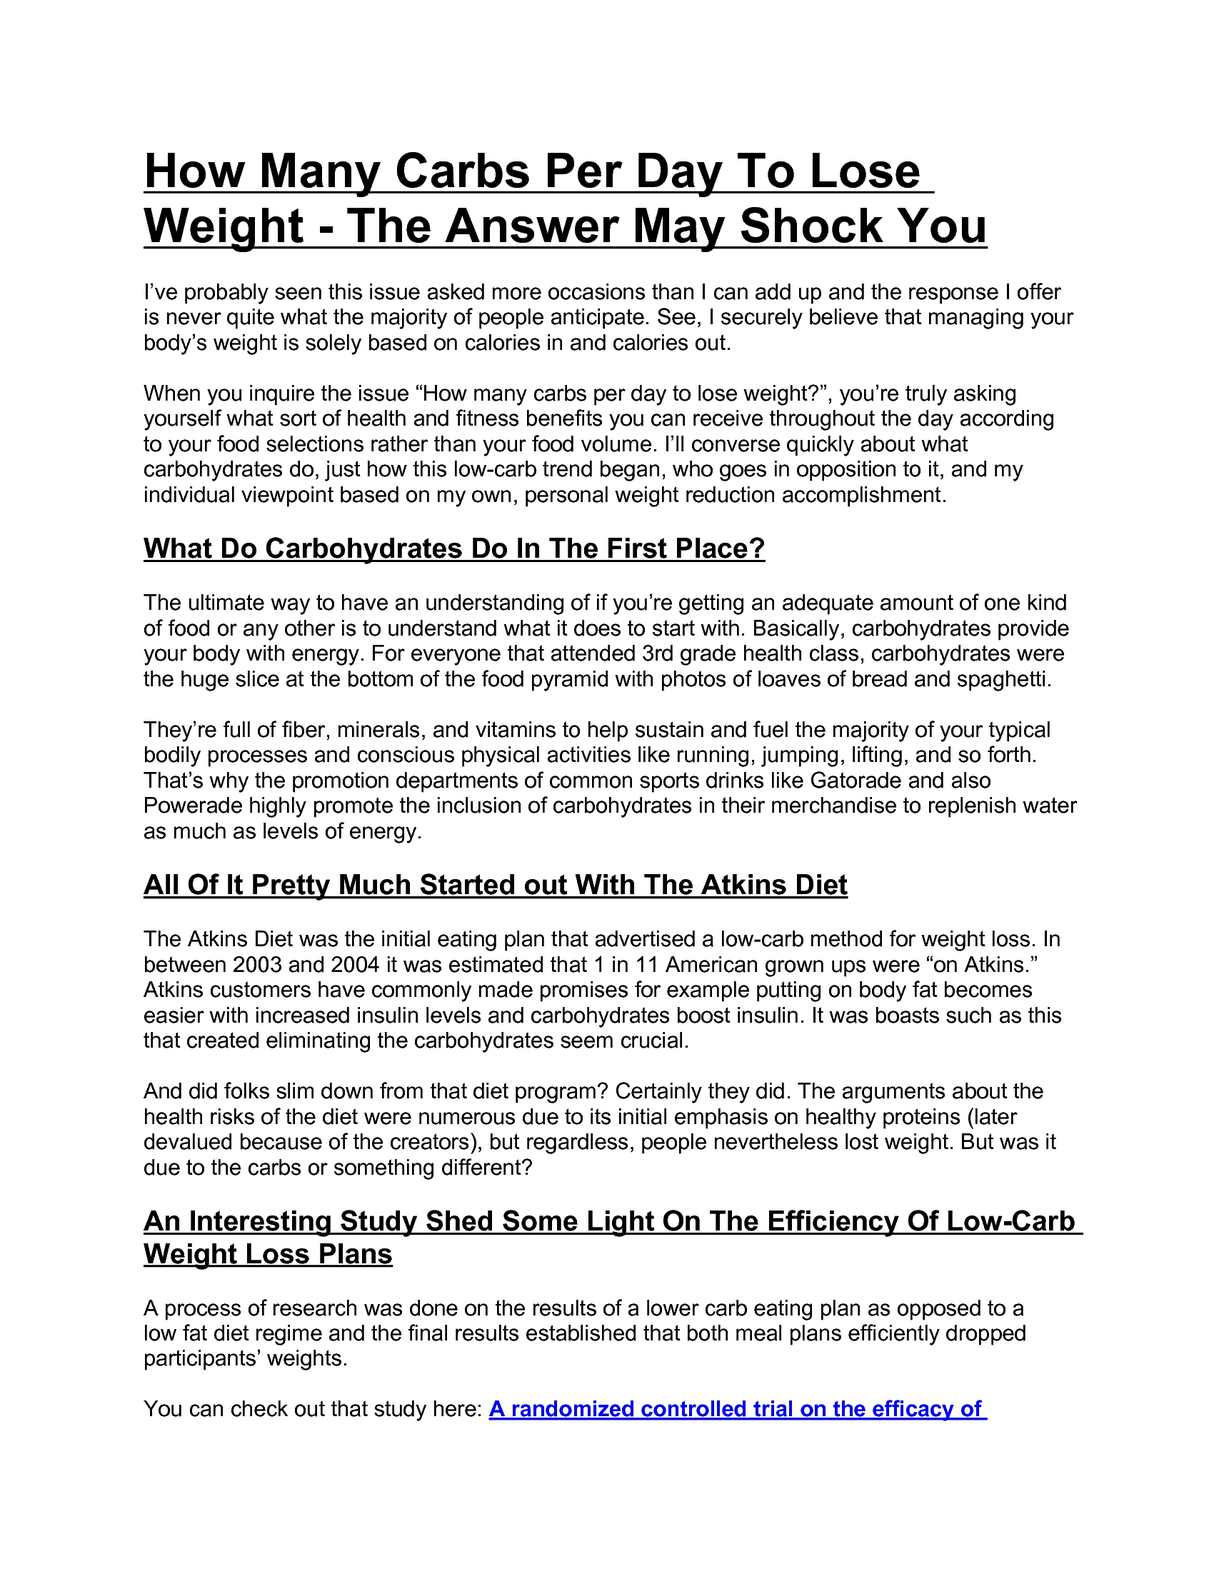 how many carbs should i eat to lose weight quickly